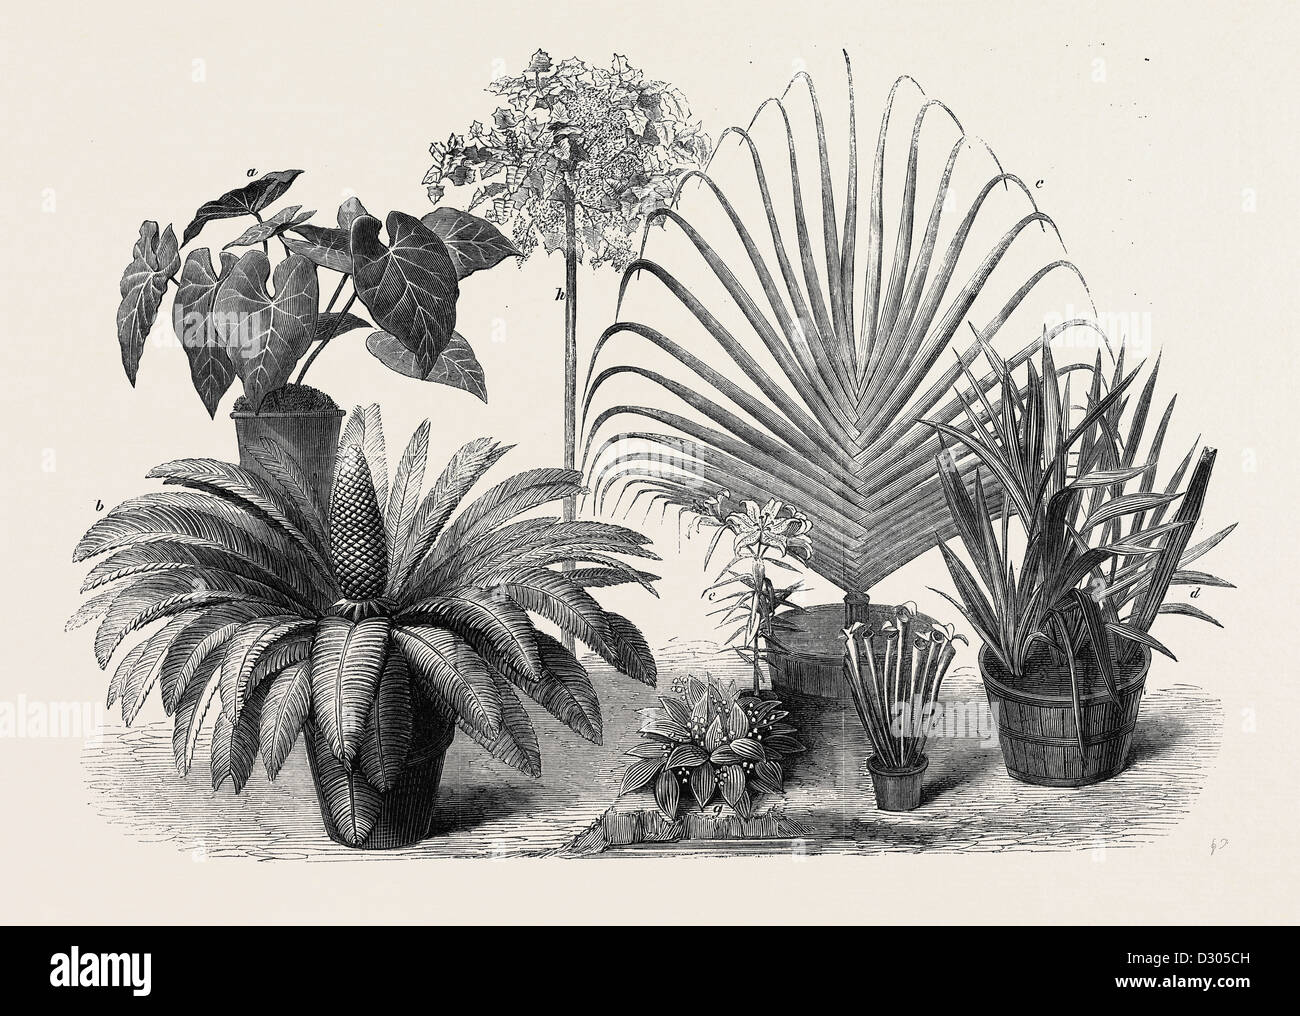 GROUP OF RARE PLANTS AT THE LATE INTERNATIONAL HORTICULTURAL EXHIBITION SOUTH KENSINGTON LONDON UK 1866 - Stock Image